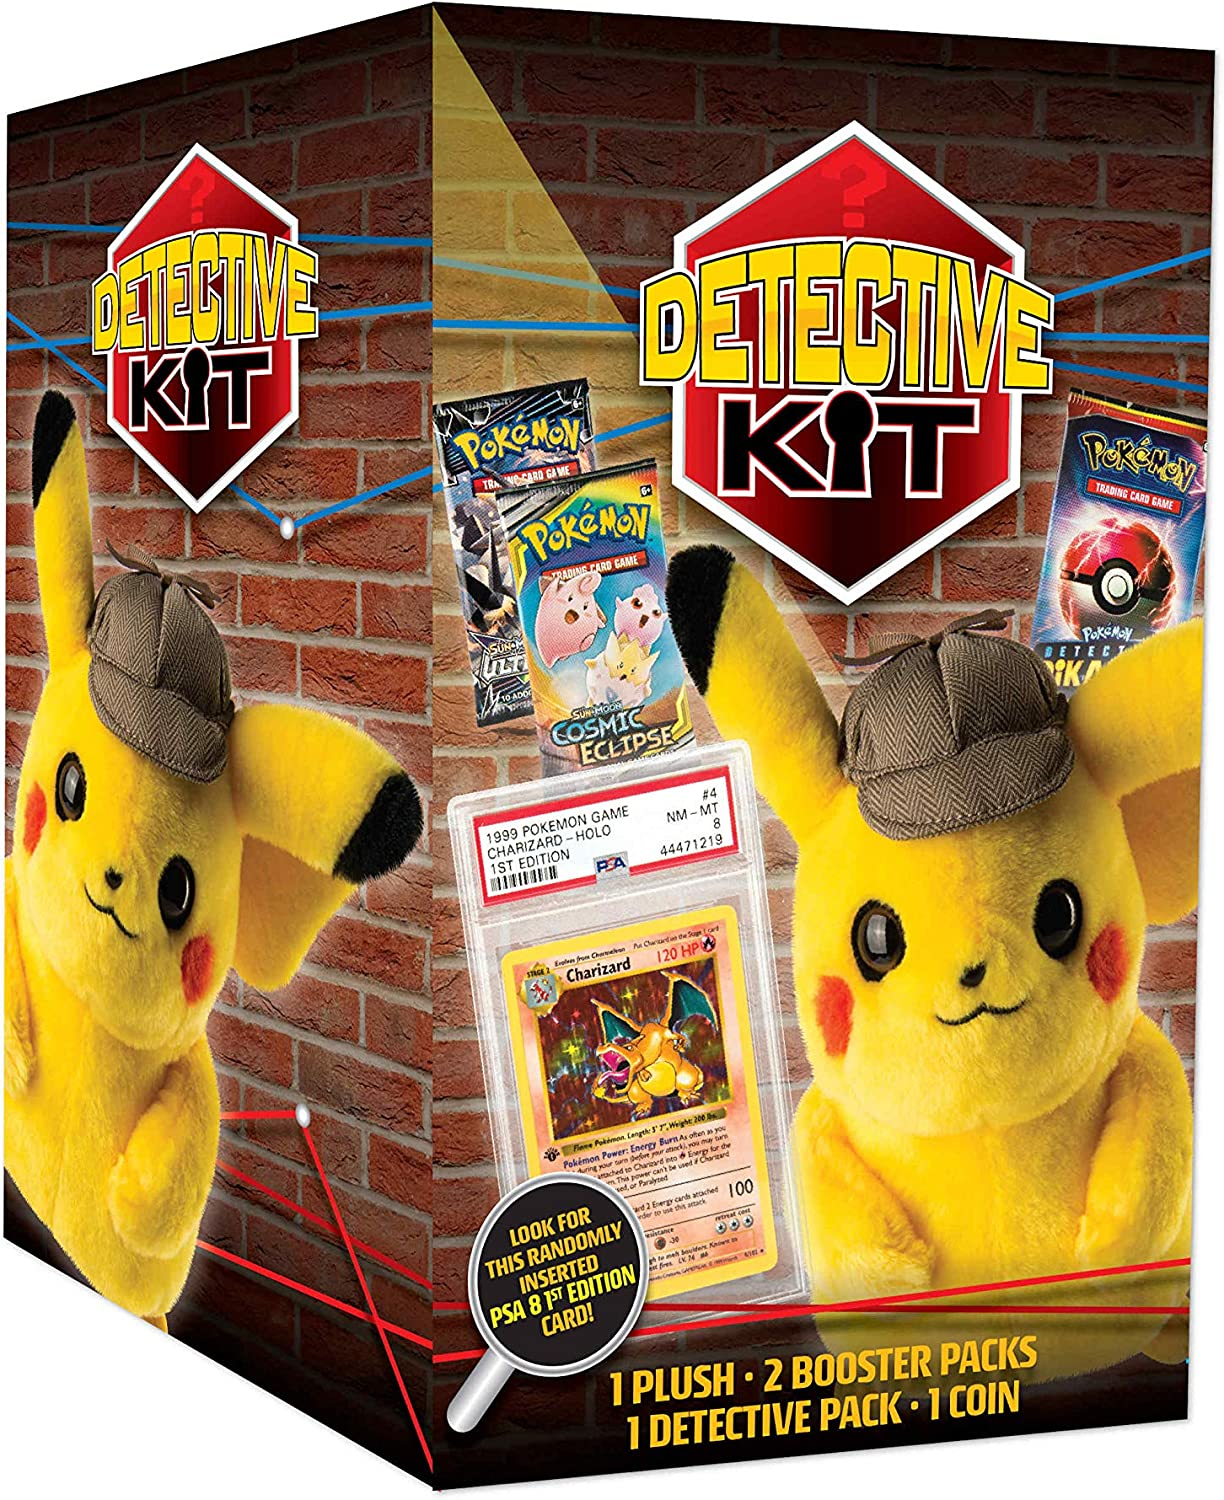 Amazon Com Pokemon Tcg Detective Pikachu Plush Doll Kit 1 Pikachu Plush Doll 2 Booster Packs Chance To Find 1st Edition Charizard Genuine Cards Multicolor 728192514098 Toys Games